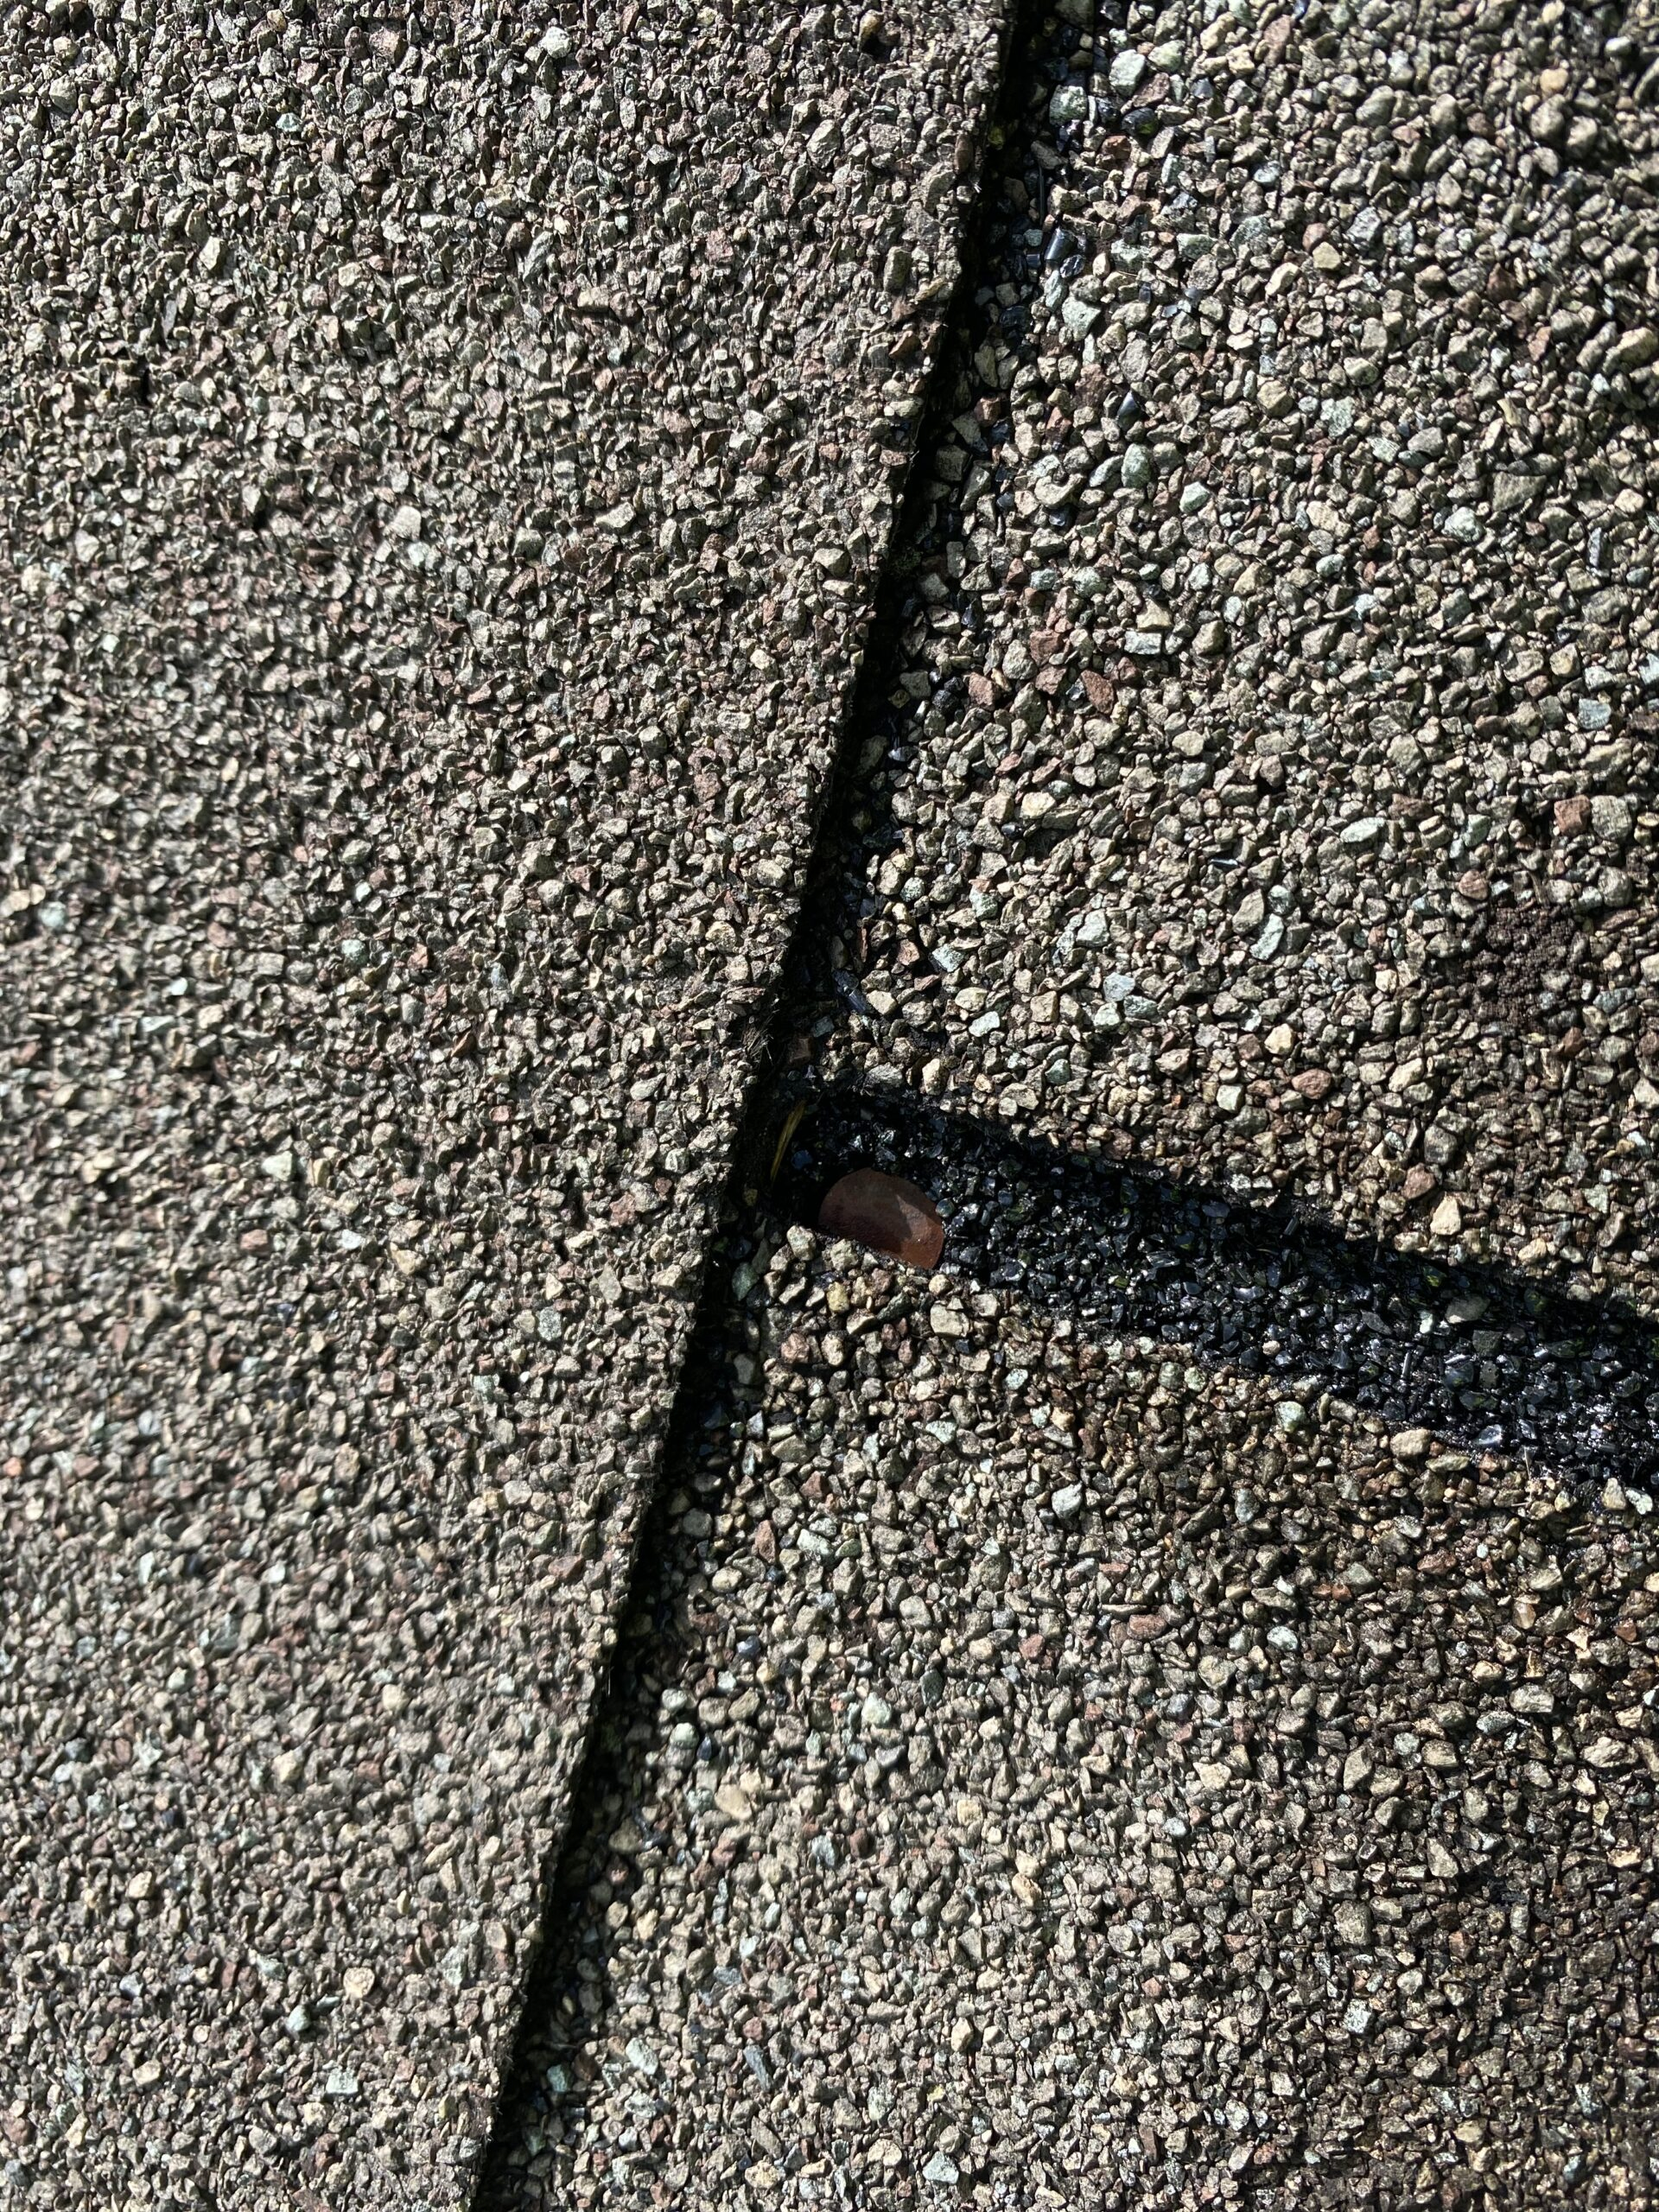 This is a picture of an exposed nail at the union of a shingle